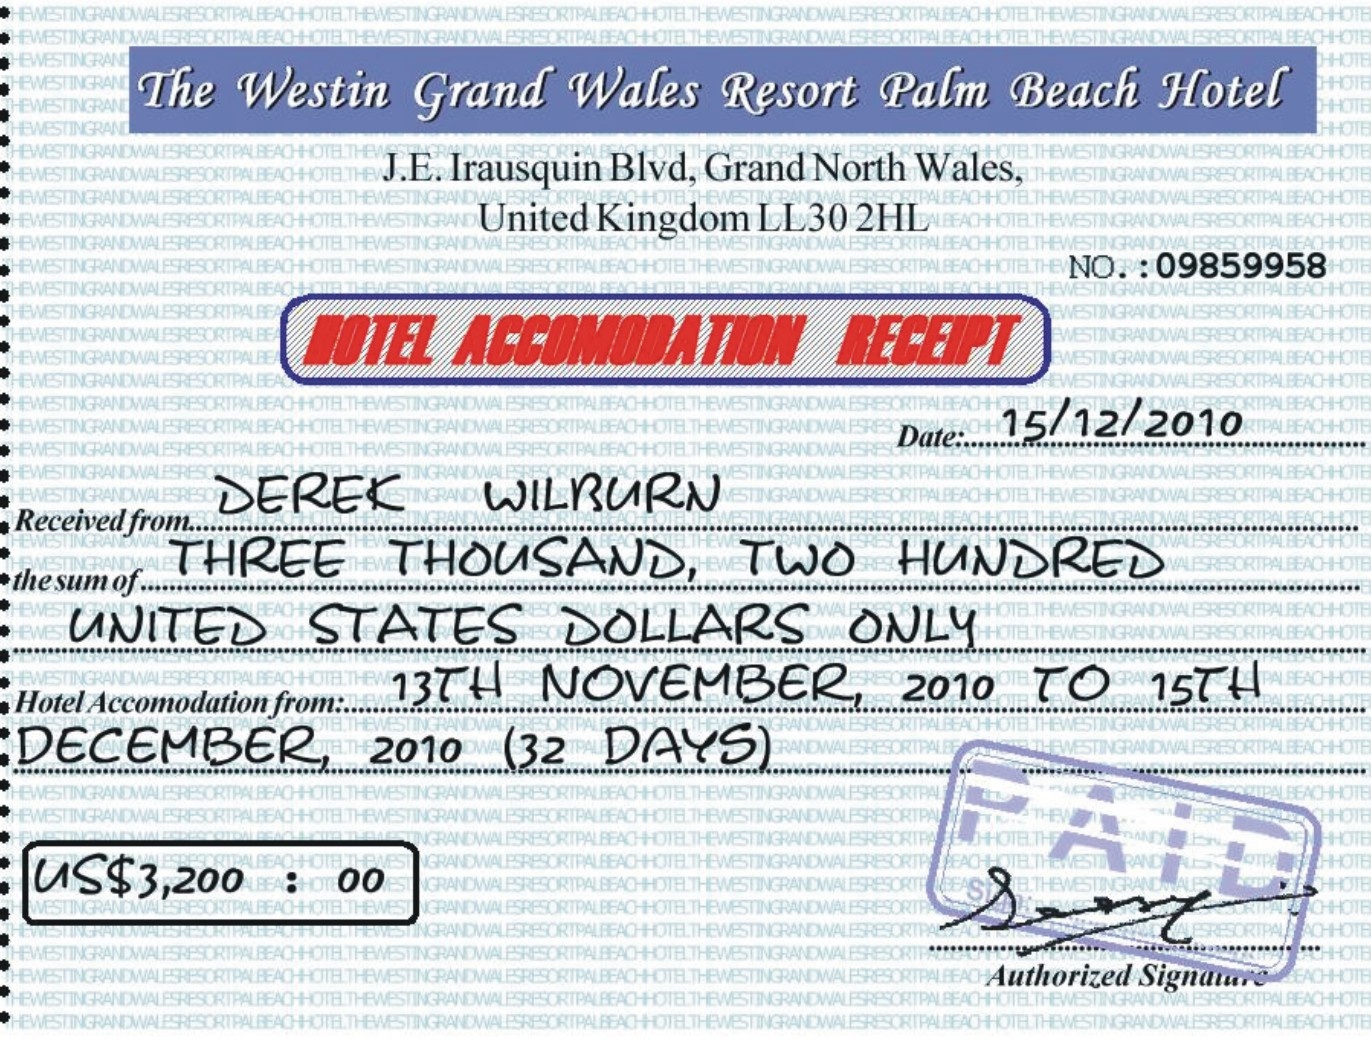 I was scammed by Derek Wilburn for tens of thousands of ...